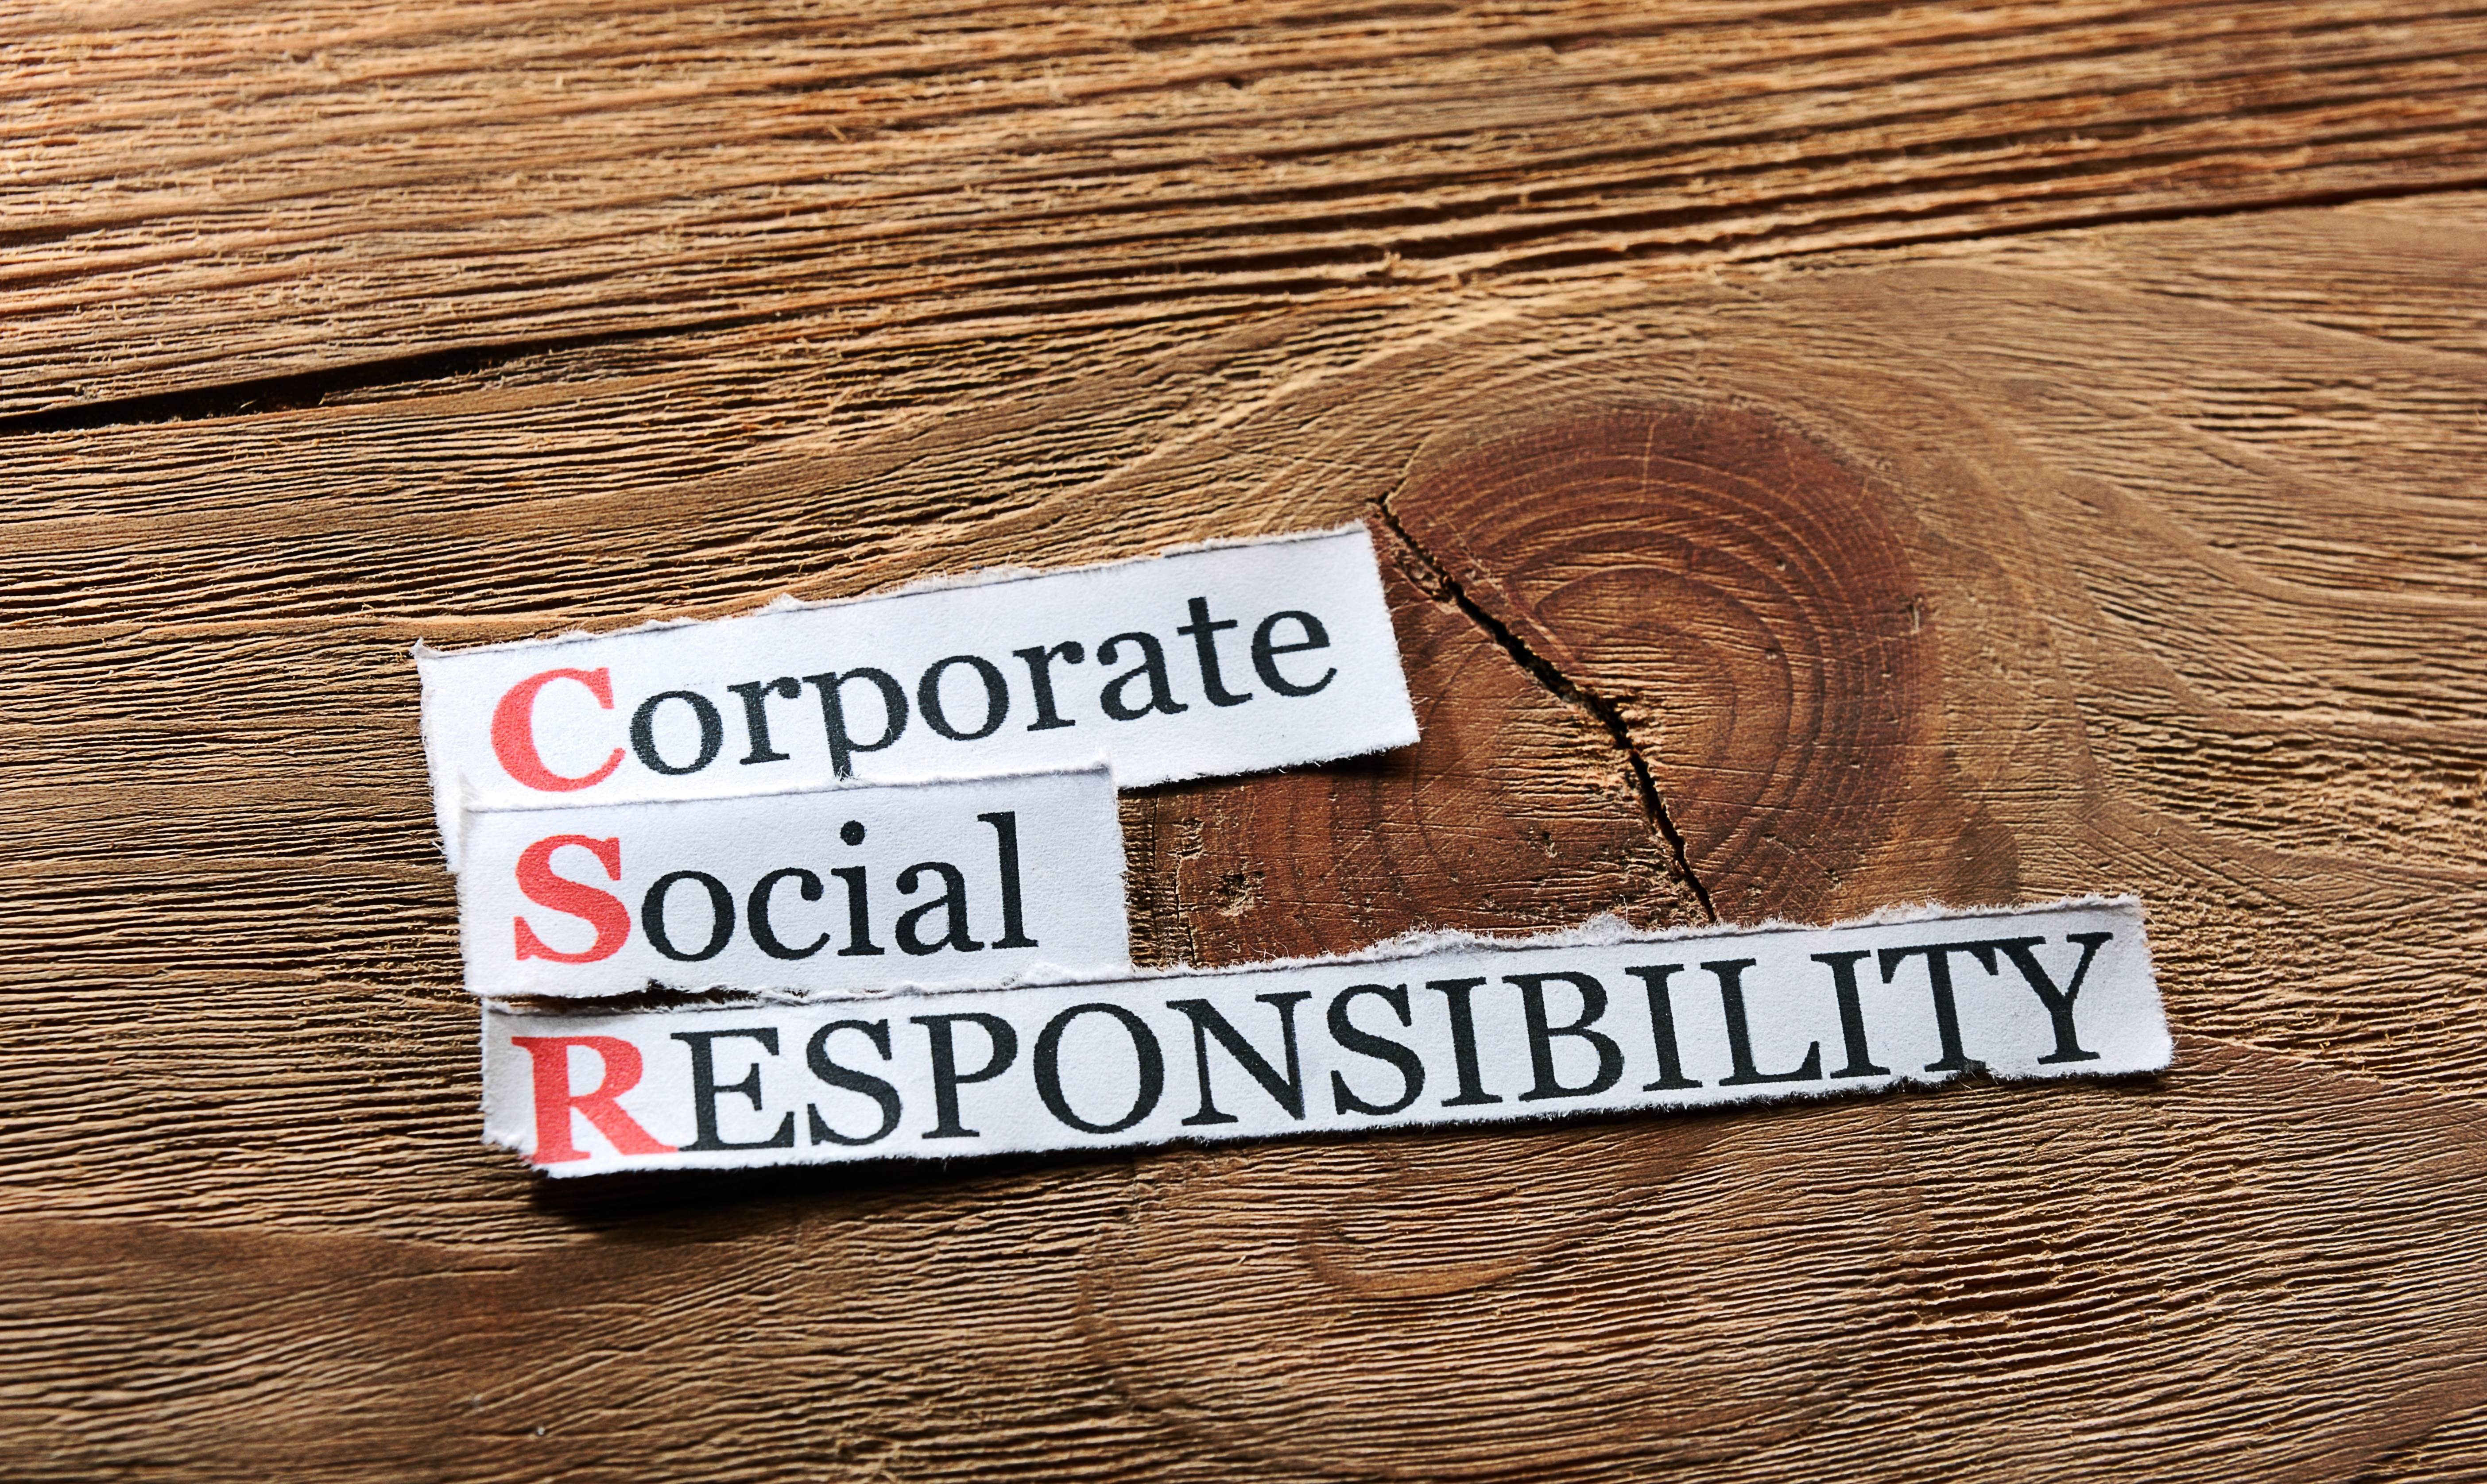 Employees Expect More than Just Checking the Box on Corporate Giving